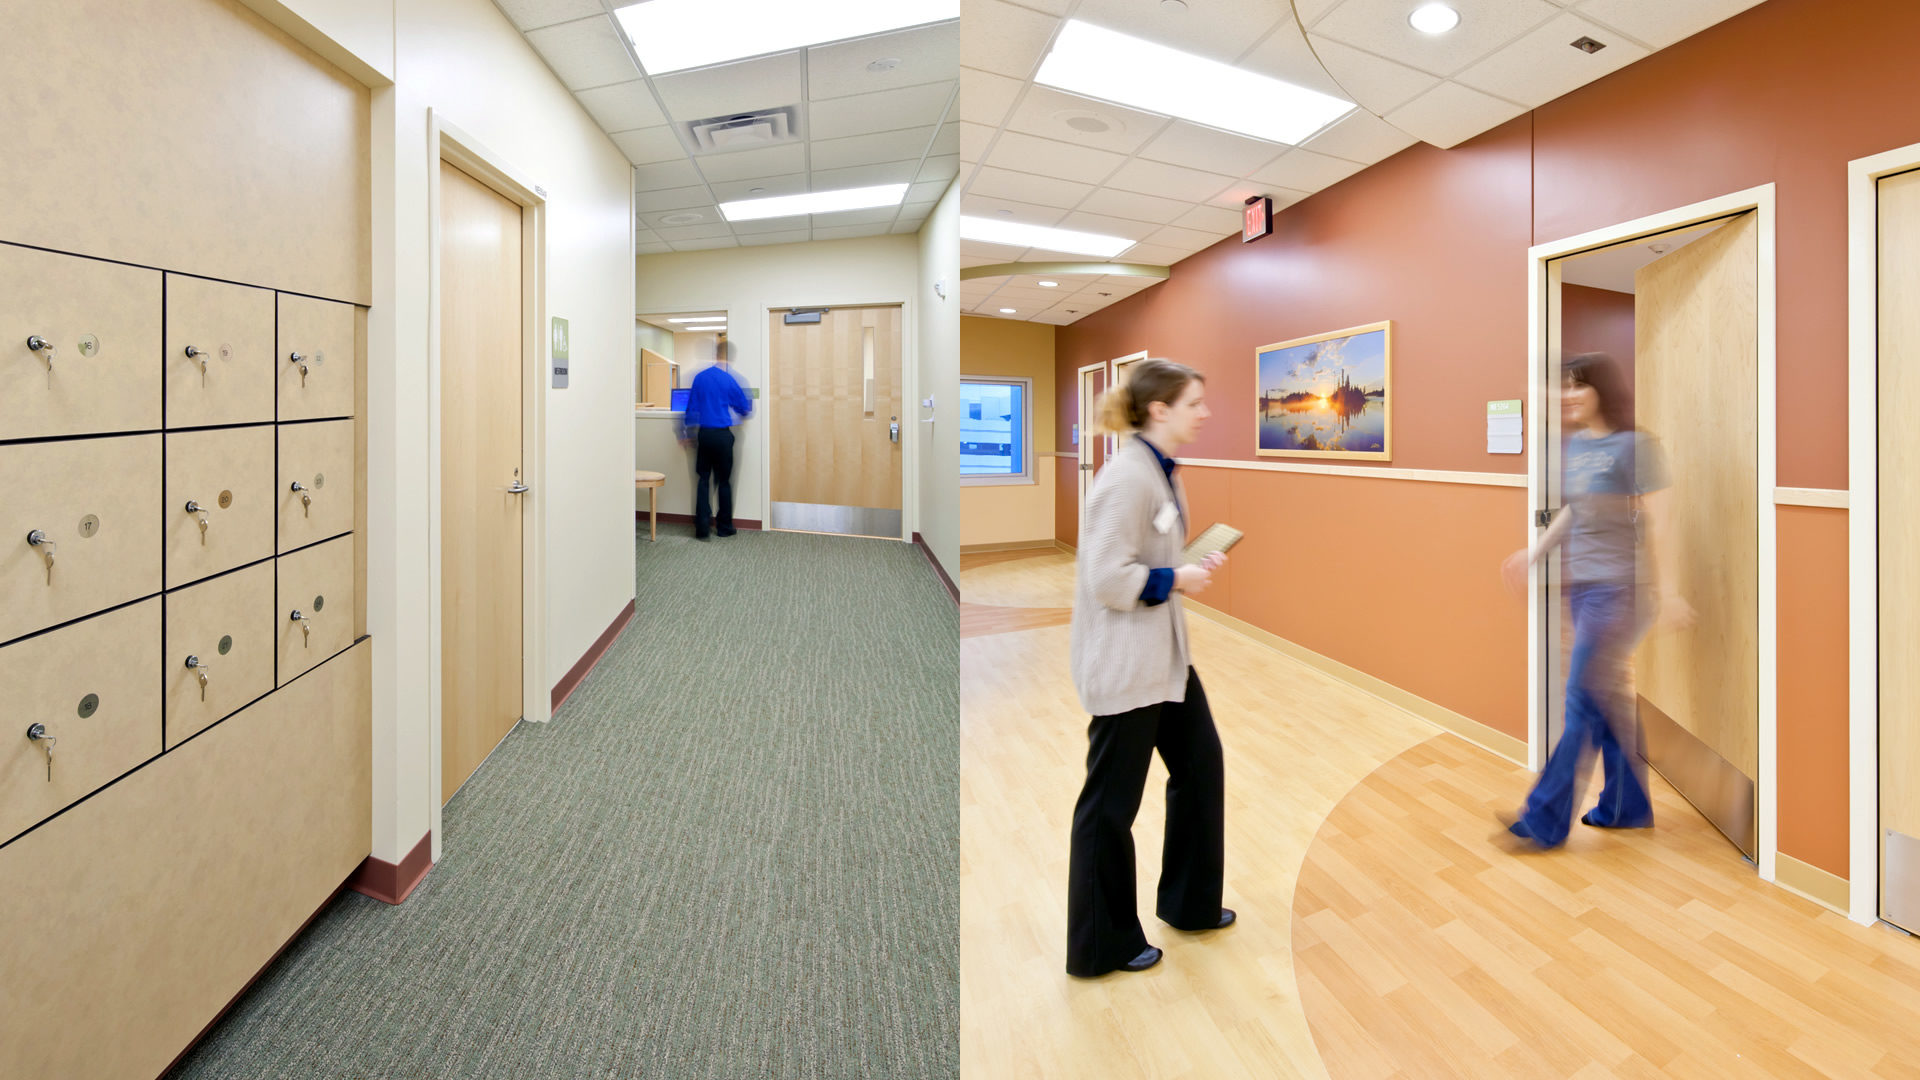 Regions Mental Health Center St Paul MN Healthcare Personal Storage Lockers and Patient Room